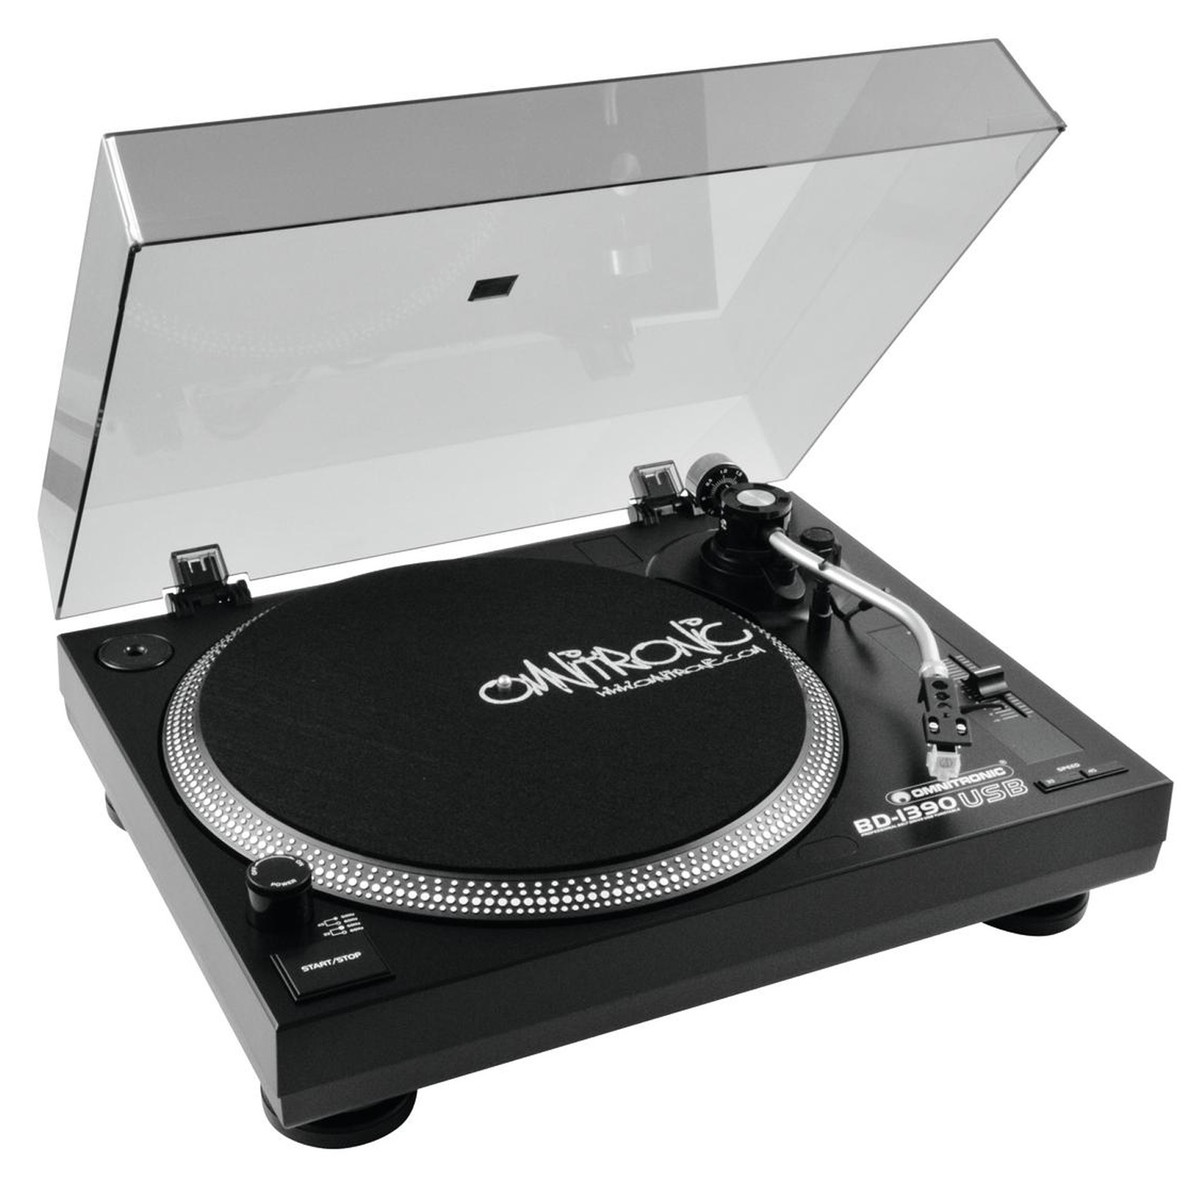 Omnitronic BD-1390 USB Turntable, Black